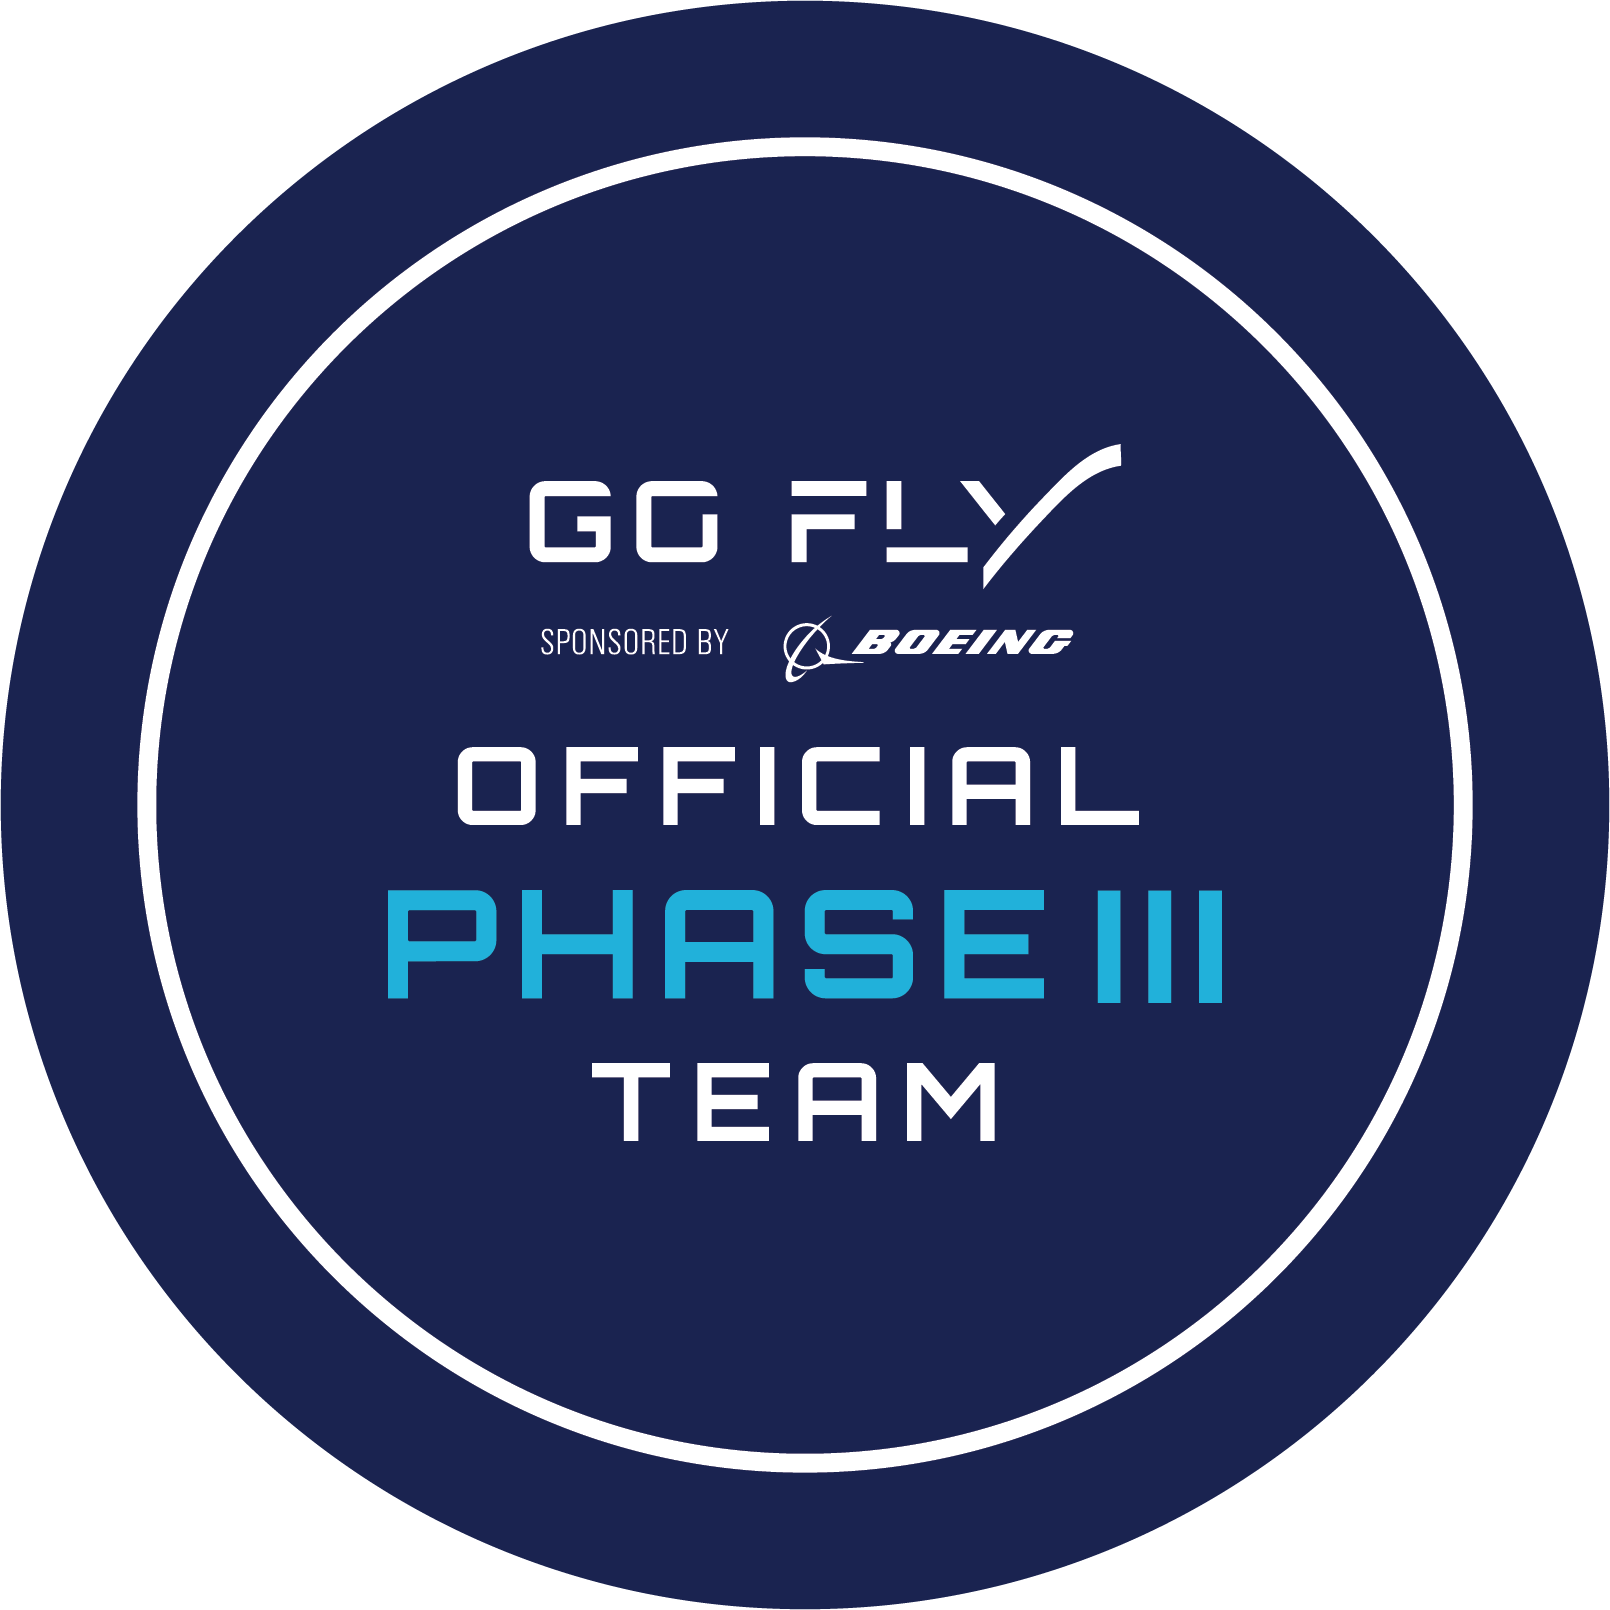 gofly_phaseIII-team_badge.png